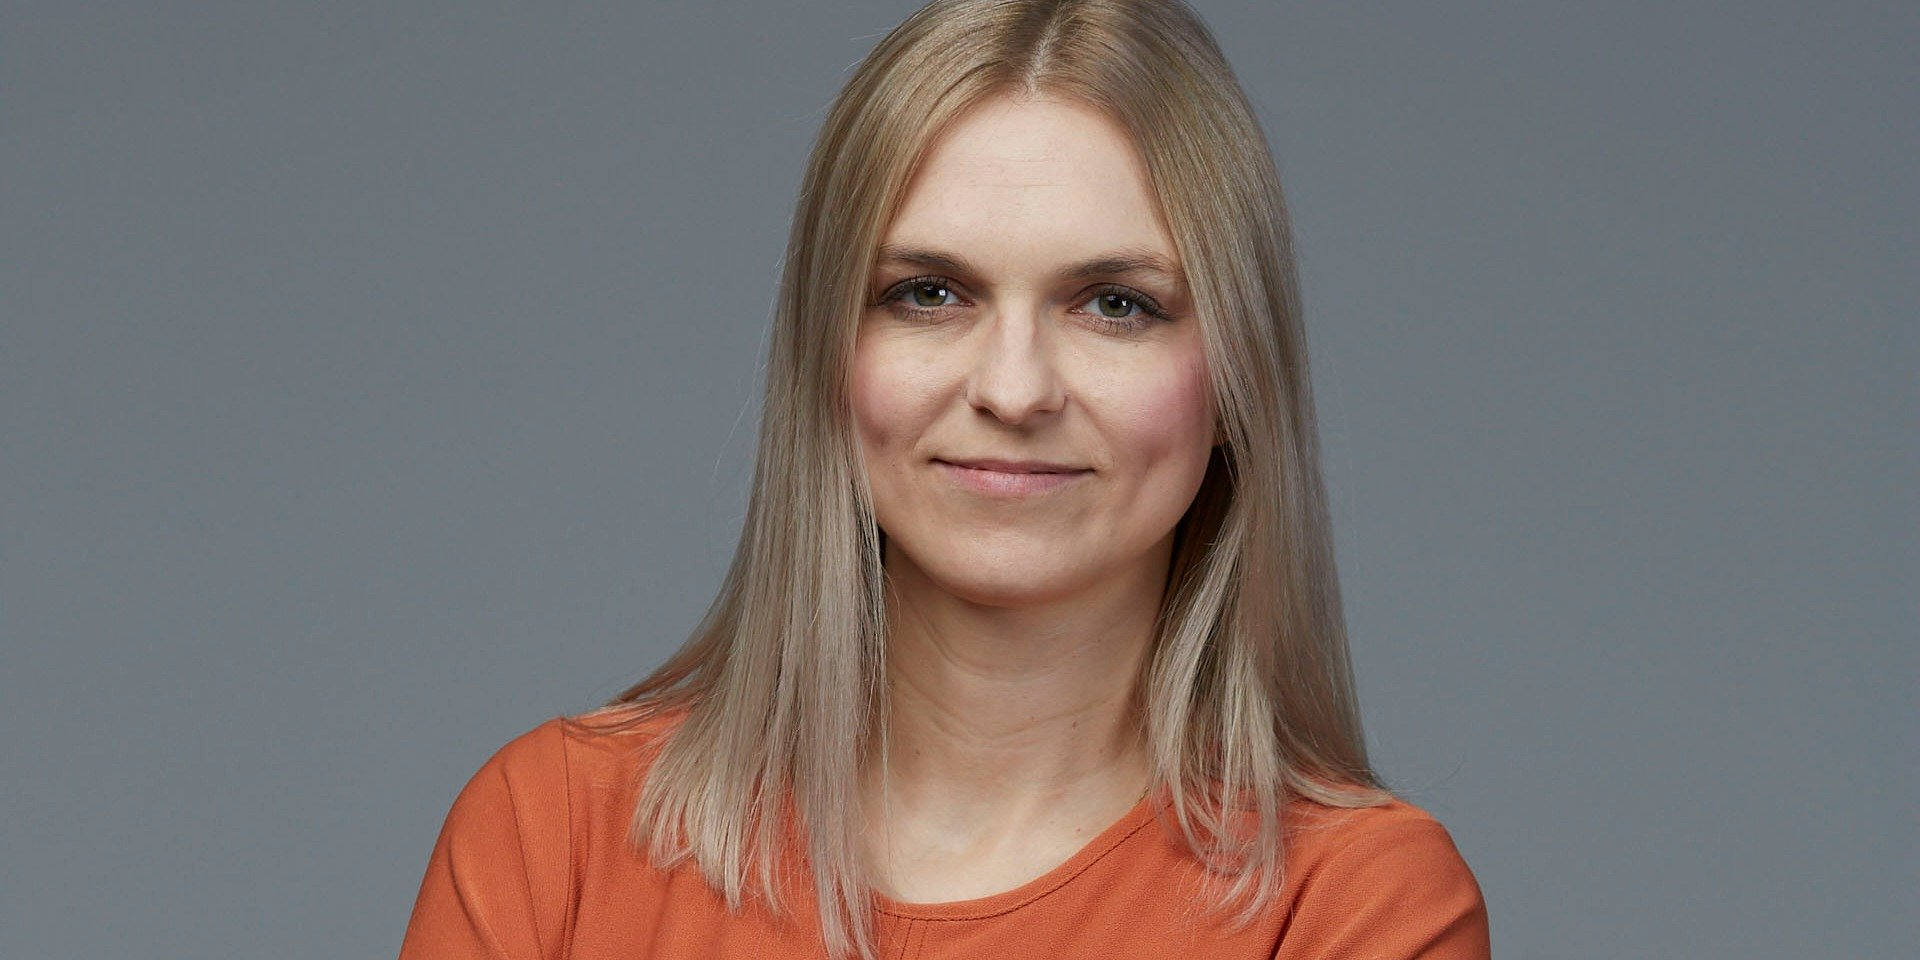 ageizm i marketing 60+: Joanna Śmietanka